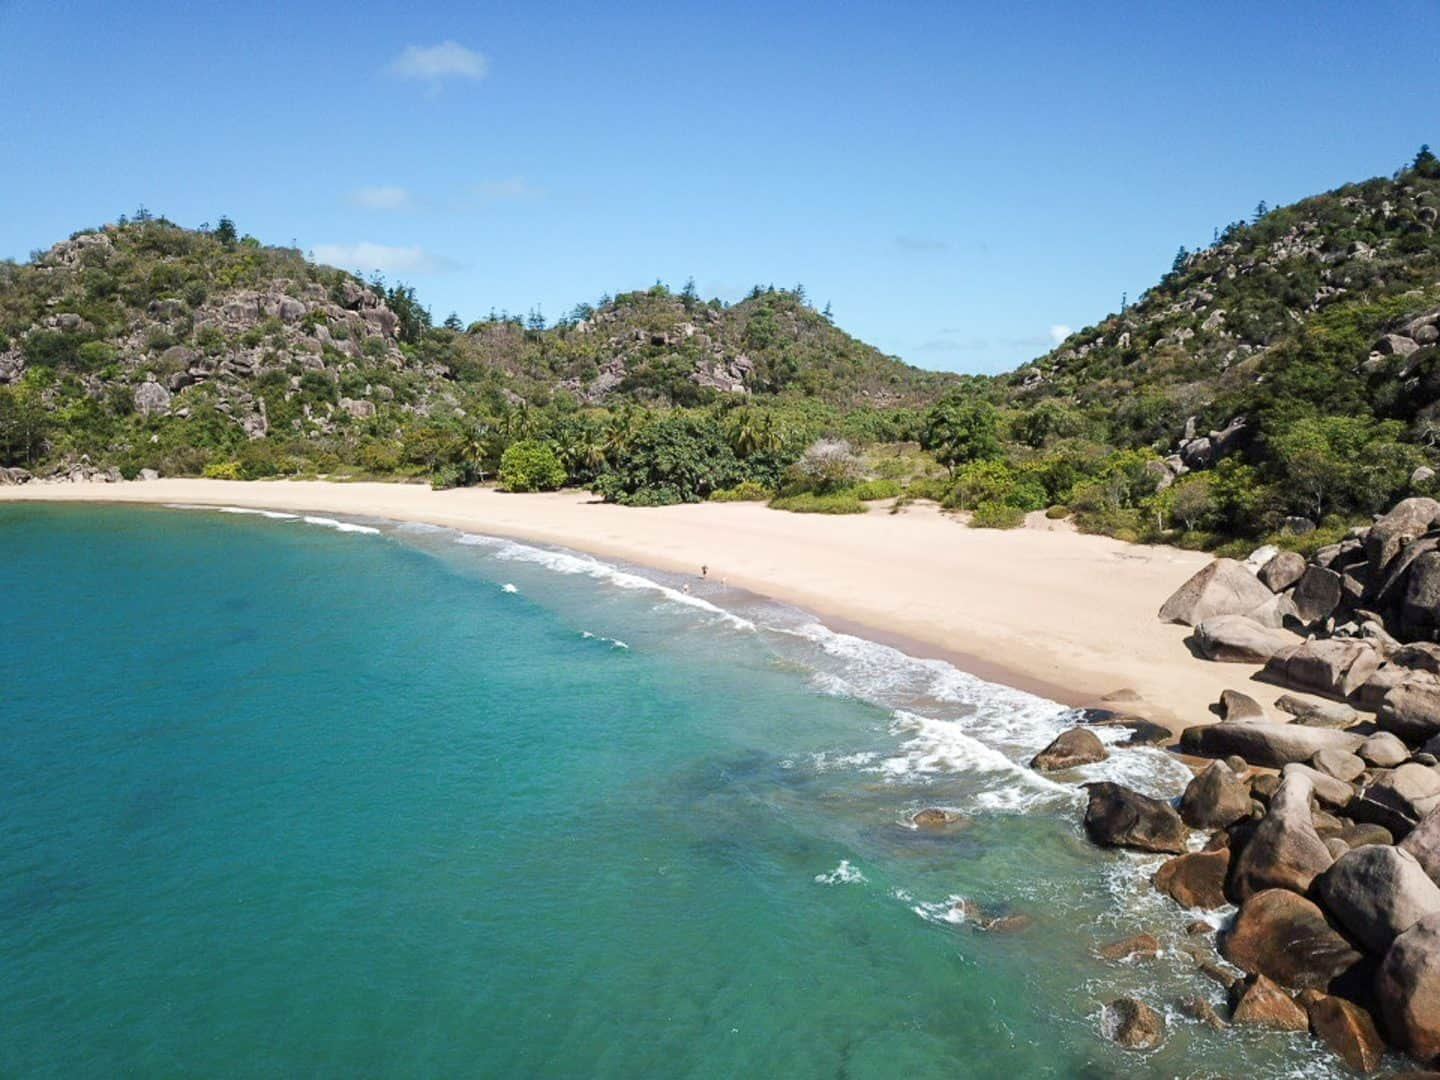 magnetic island, things to do on magnetic island, things to do in magnetic island, magnetic island australia, magnetic island queensland, radical bay